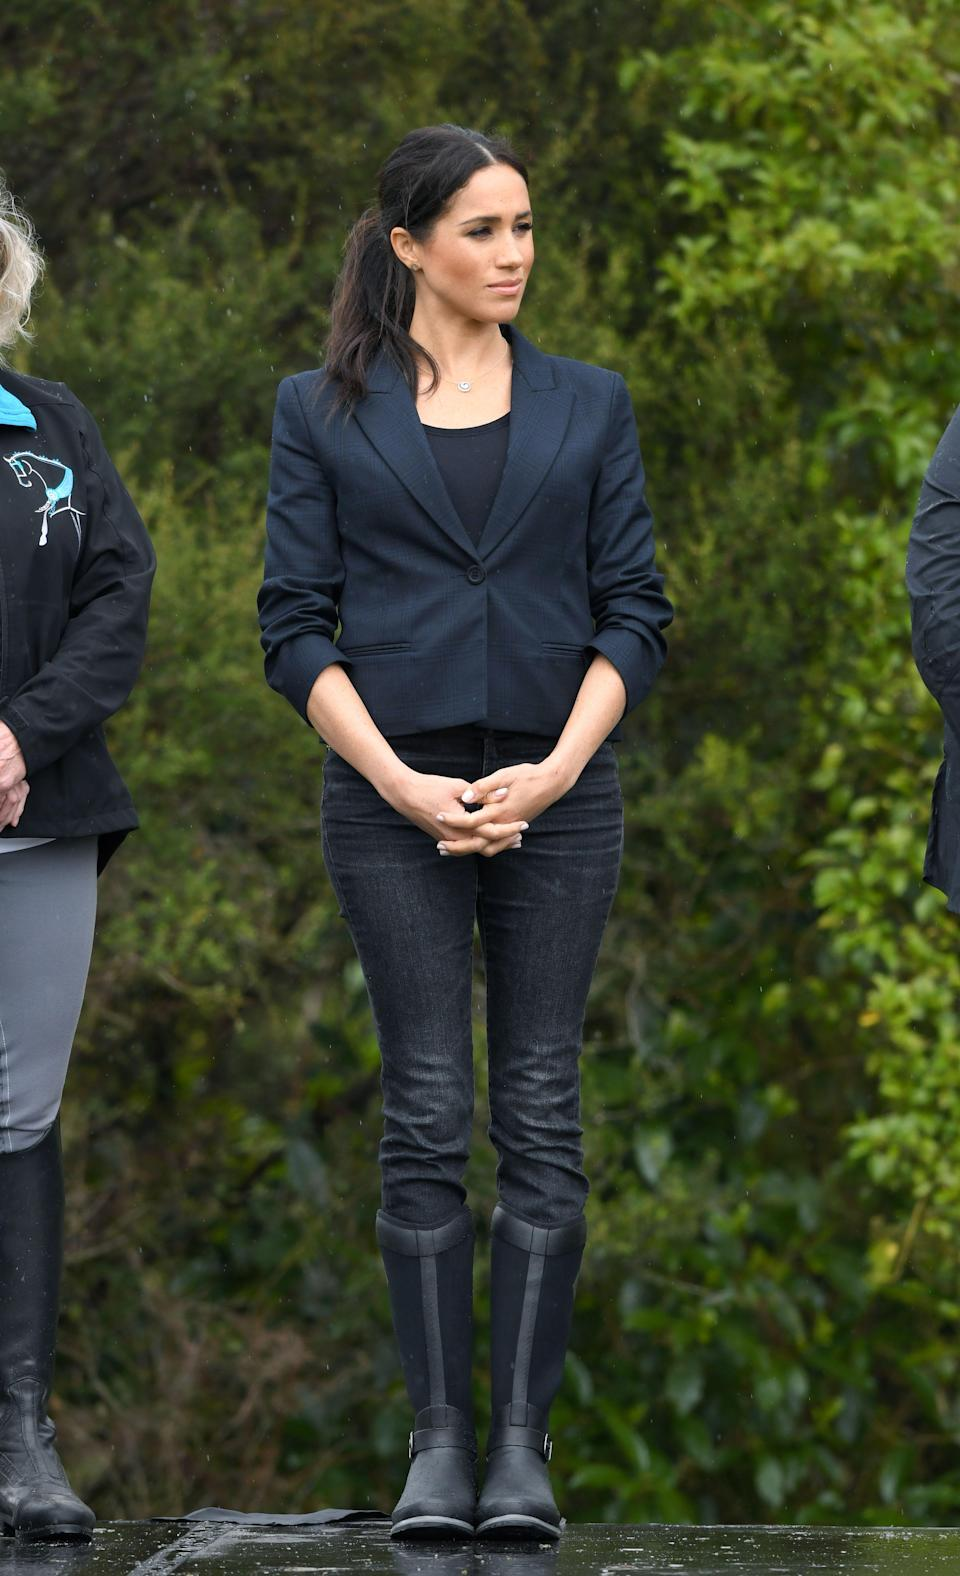 """<p>For the overcast days outdoors, Markle wore <a href=""""https://www.muckbootcompany.co.uk/womens-reign-tall-equestrian-boot.html"""" rel=""""nofollow noopener"""" target=""""_blank"""" data-ylk=""""slk:The Original Muck Boot Company's Reign tall boots"""" class=""""link rapid-noclick-resp"""">The Original Muck Boot Company's Reign tall boots</a>, with <a href=""""https://www.net-a-porter.com/gb/en/Shop/Designers/JCrew?cm_mmc=GoogleUK--c-_-NAP_EN_UK_London-_-NAP+-+INTL+-+London+-+Designer_J.Crew+-+BT--J.Crew+-+Alone+-+Phrase-_-j+crew_p_kwd-71021491_INTL&gclid=EAIaIQobChMIsOHJ-oOu3gIVCOd3Ch3fpwFZEAAYAiAAEgJ9sPD_BwE&gclsrc=aw.ds&pn=1&npp=60&image_view=product&dScroll=0"""" rel=""""nofollow noopener"""" target=""""_blank"""" data-ylk=""""slk:J.Crew"""" class=""""link rapid-noclick-resp"""">J.Crew</a> <a href=""""https://www.jcrew.com/uk/p/womens_category/denim_jeans/highrise/9-high-rise-toothpick-jean-in-charcoal-wash/H2651?color_name=charcoal-wash"""" rel=""""nofollow noopener"""" target=""""_blank"""" data-ylk=""""slk:jeans"""" class=""""link rapid-noclick-resp"""">jeans</a>, a <a href=""""https://www.lavenderhillclothing.com/collections/scoop-neck/products/essentialshortsleevetshirt"""" rel=""""nofollow noopener"""" target=""""_blank"""" data-ylk=""""slk:Lavender Hill t-shirt"""" class=""""link rapid-noclick-resp"""">Lavender Hill t-shirt</a> and a <a href=""""https://www.karenwalker.com/product/fathom-jacket?i=60027-01&u=6400000548795"""" rel=""""nofollow noopener"""" target=""""_blank"""" data-ylk=""""slk:Karen Walker blazer"""" class=""""link rapid-noclick-resp"""">Karen Walker blazer</a>.</p>"""